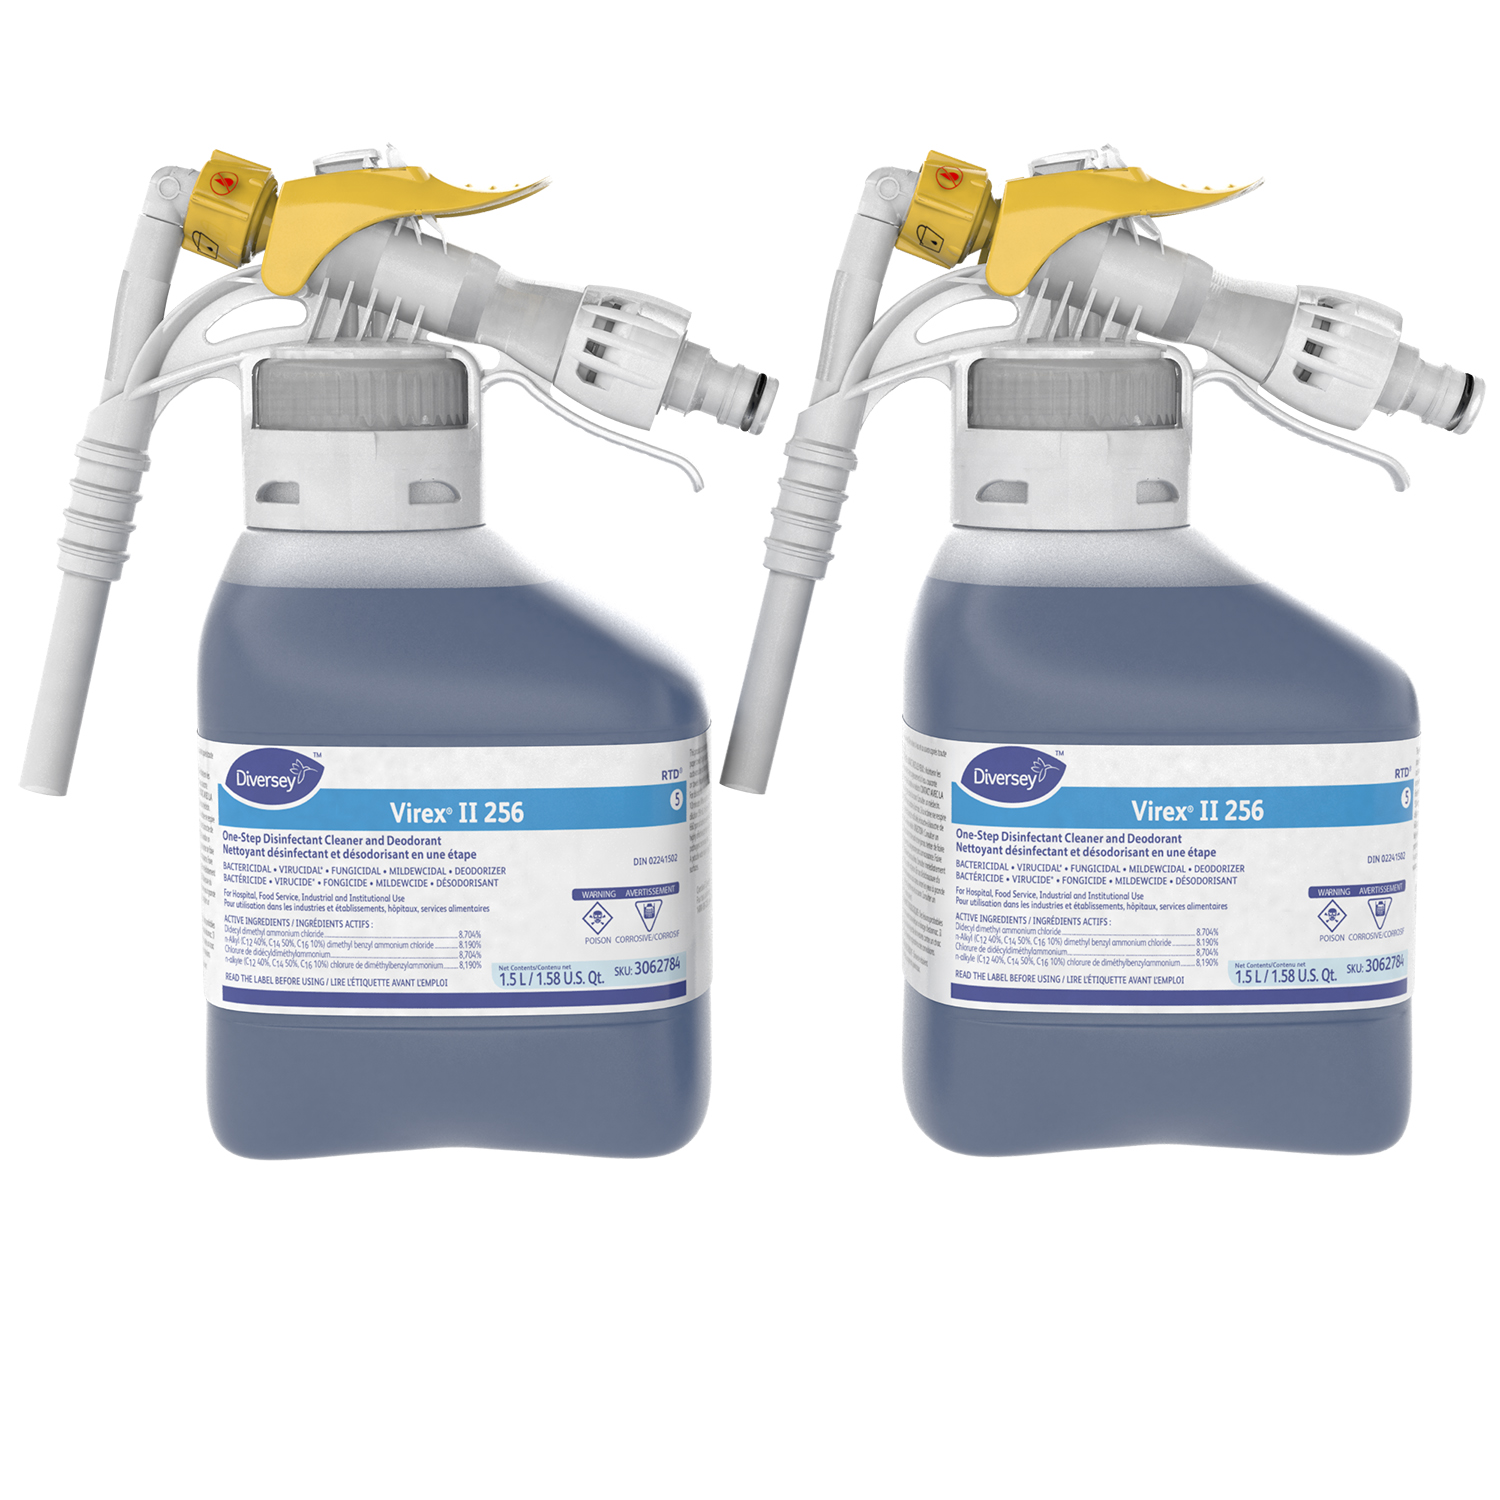 Diversey Virex Ii 256 One Step Disinfectant Cleaner And Deodorant 1 5 L Rtd 2 Ct Grand Toy